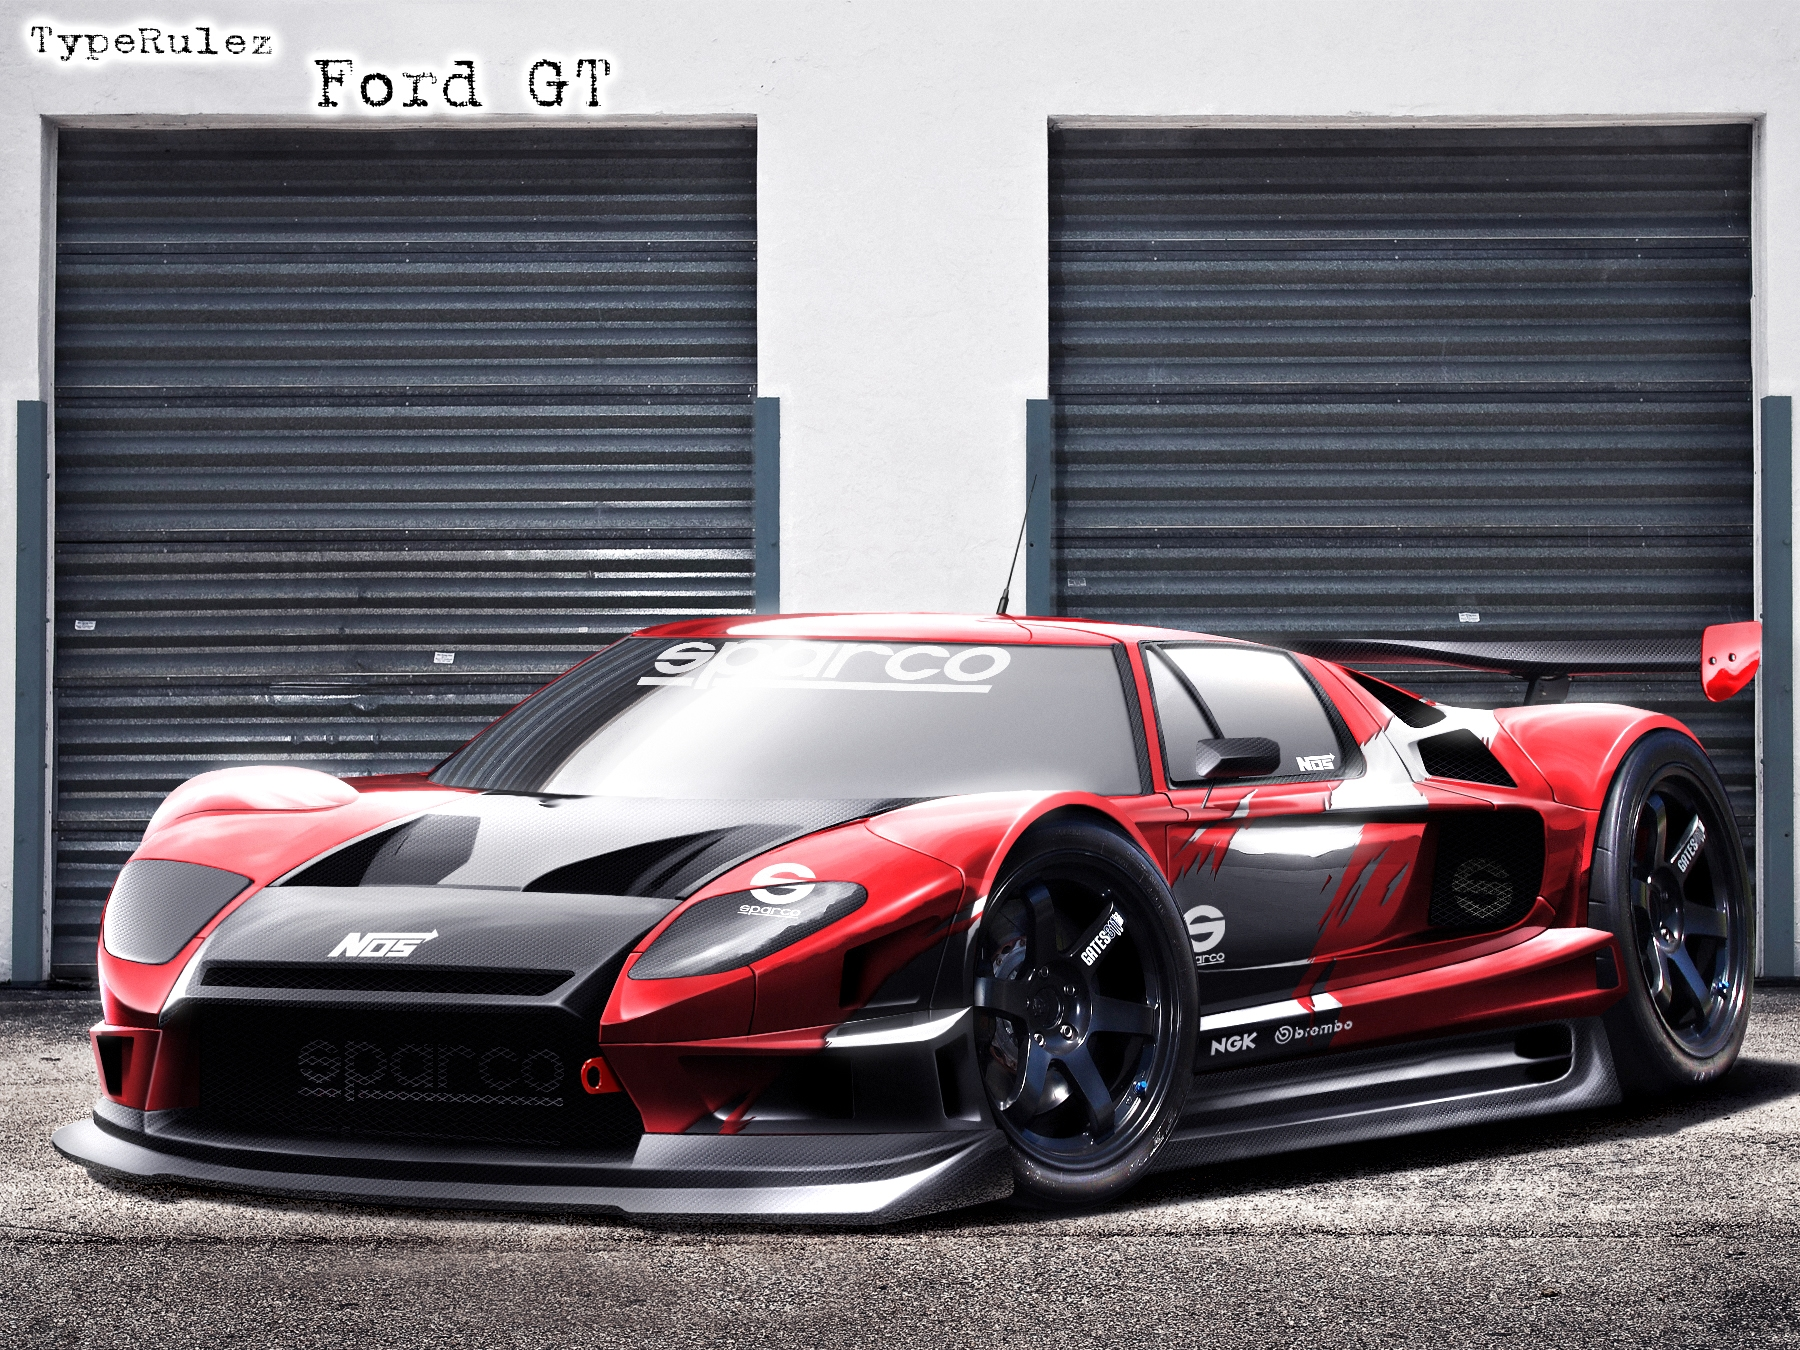 ford gt free download